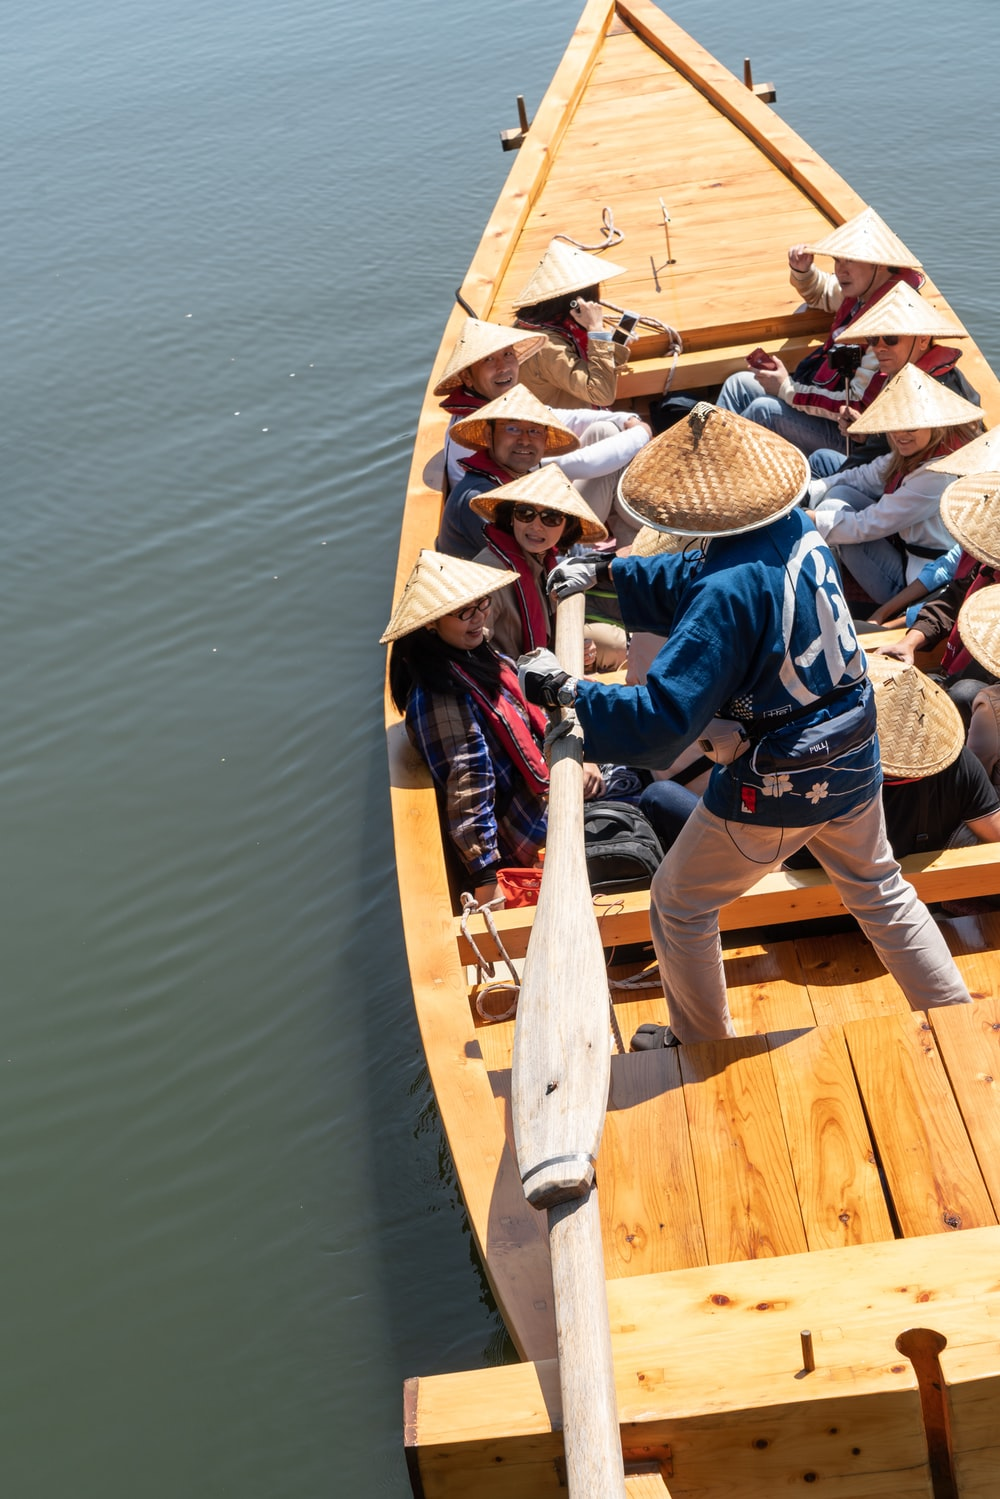 group of people riding boat